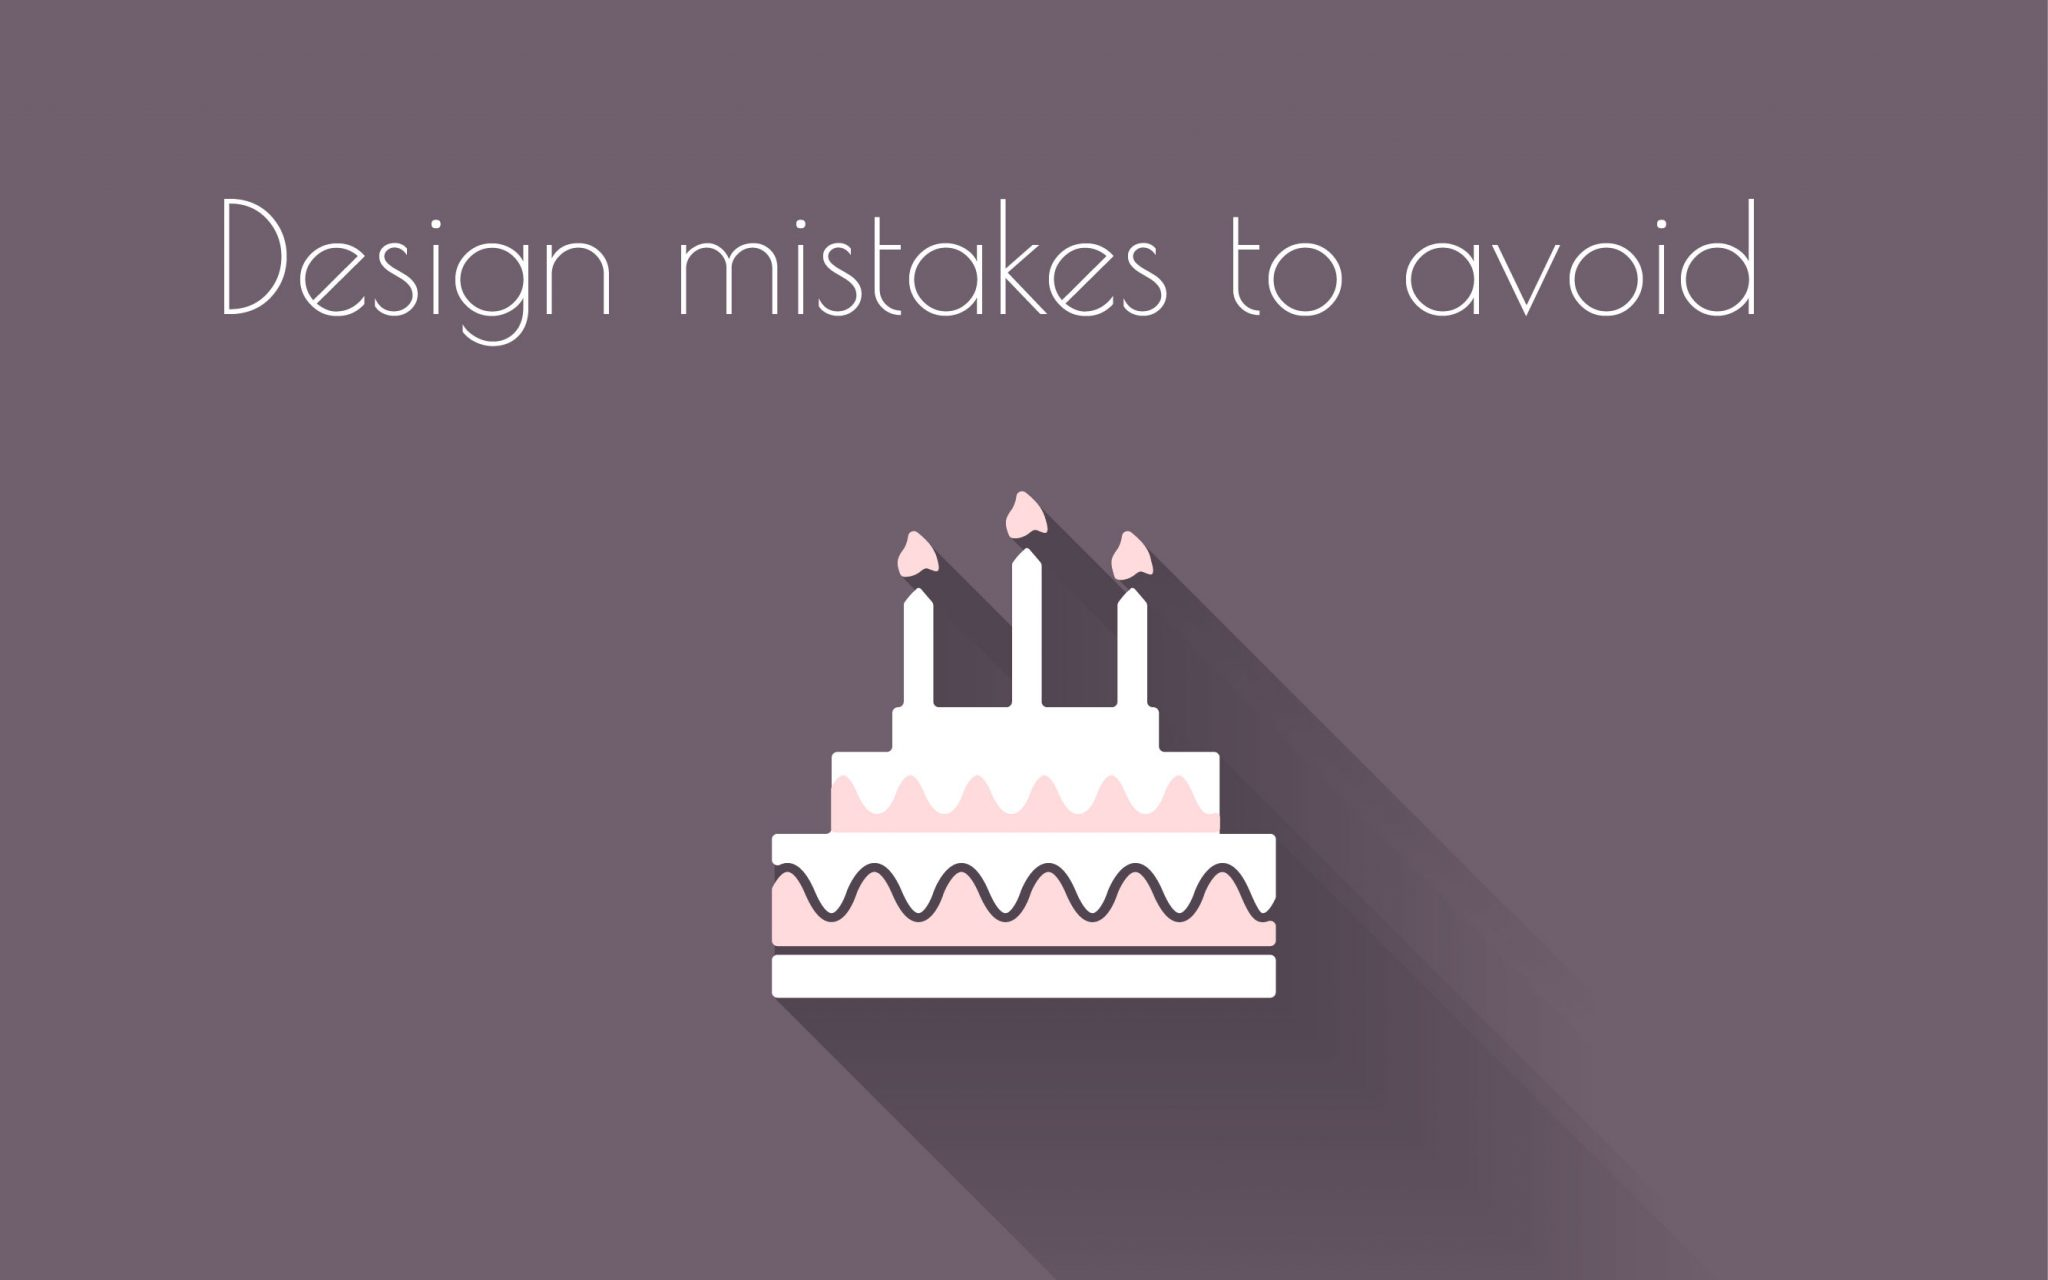 9 Design Mistakes to Avoid in a Corporate Setting